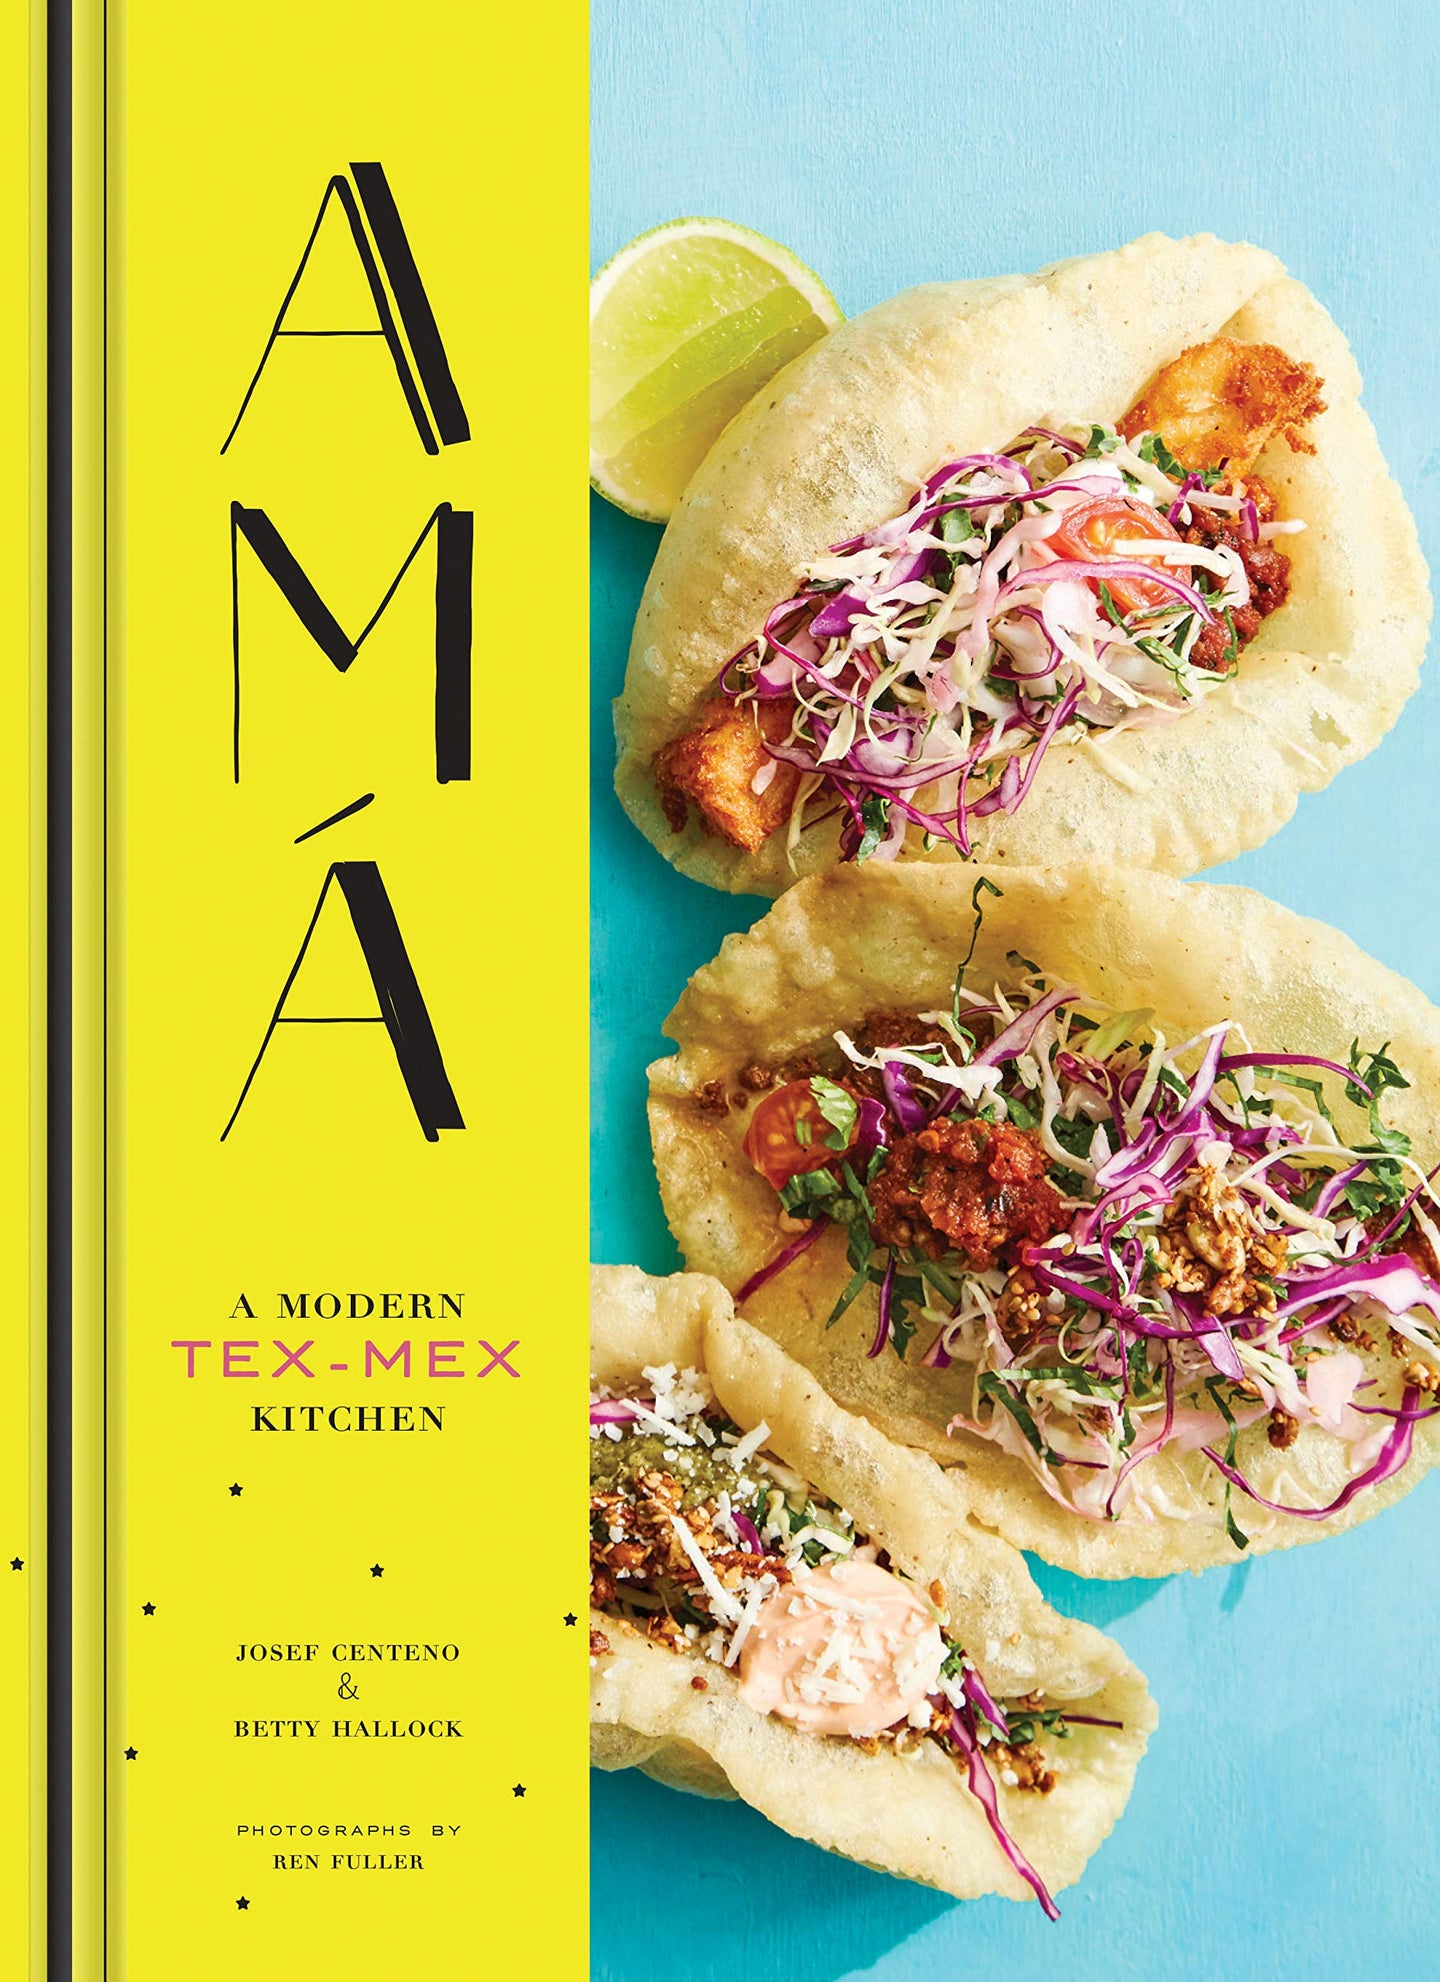 Ama: A Modern Tex-Mex Kitchen